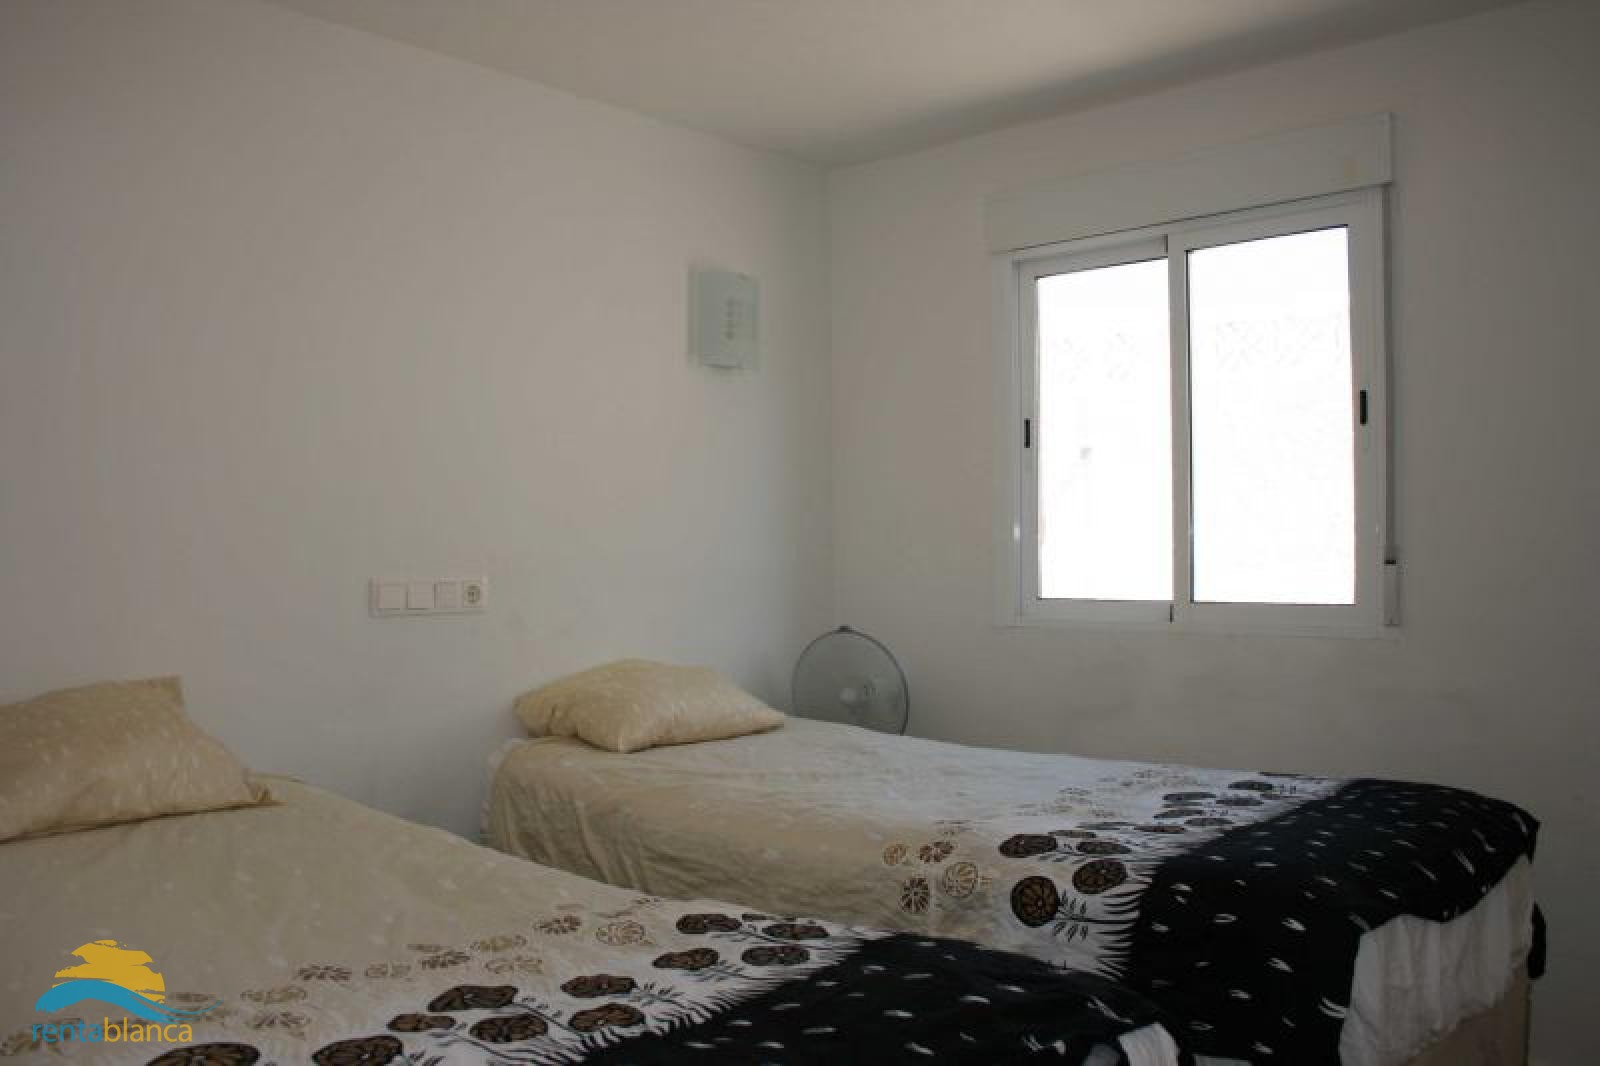 Villa with separate downstairs apartment - Rentablanca